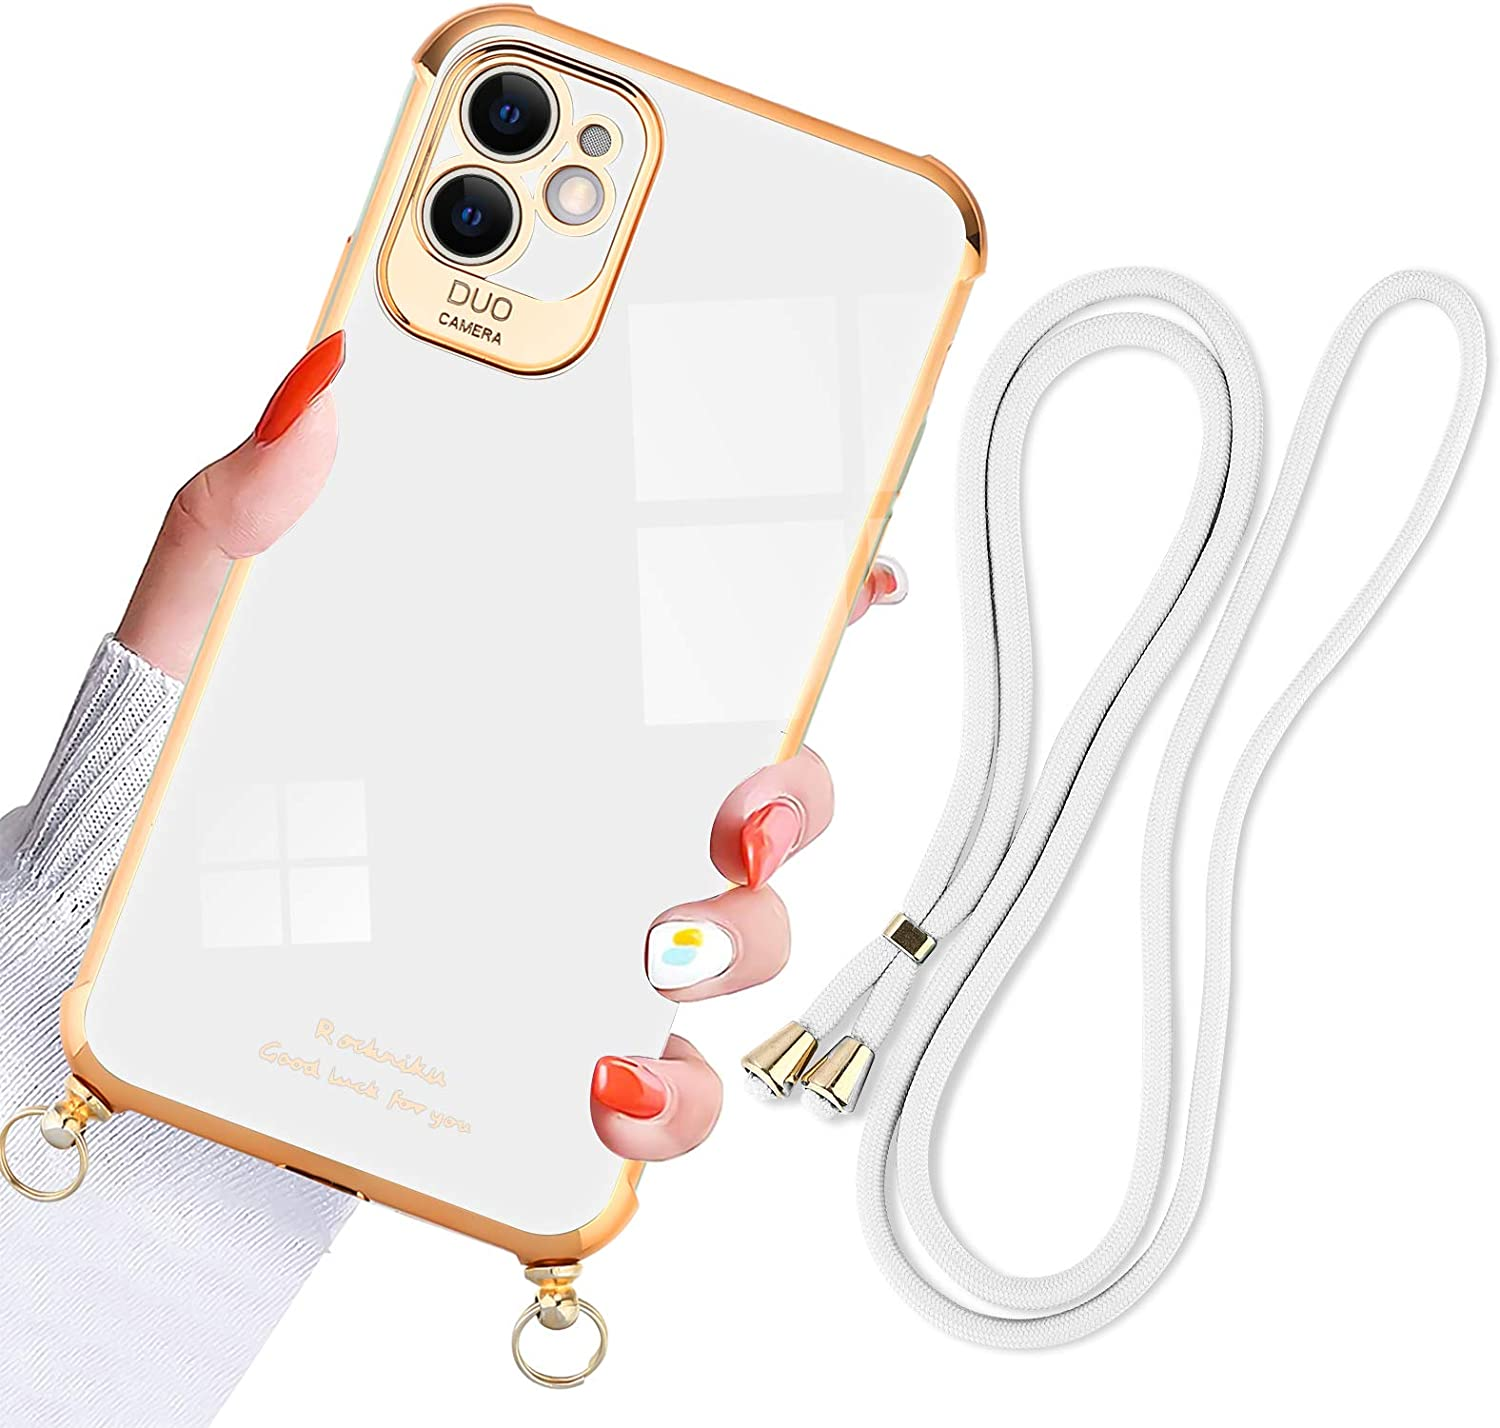 KANGHAR iPhone 11 Case 6.1 Inch 2019 Plating with Lanyard Scalable Adjustment Ultra-Thin Soft TPU Shockproof Durable Electroplate Edge Cover for iPhone 11(White)